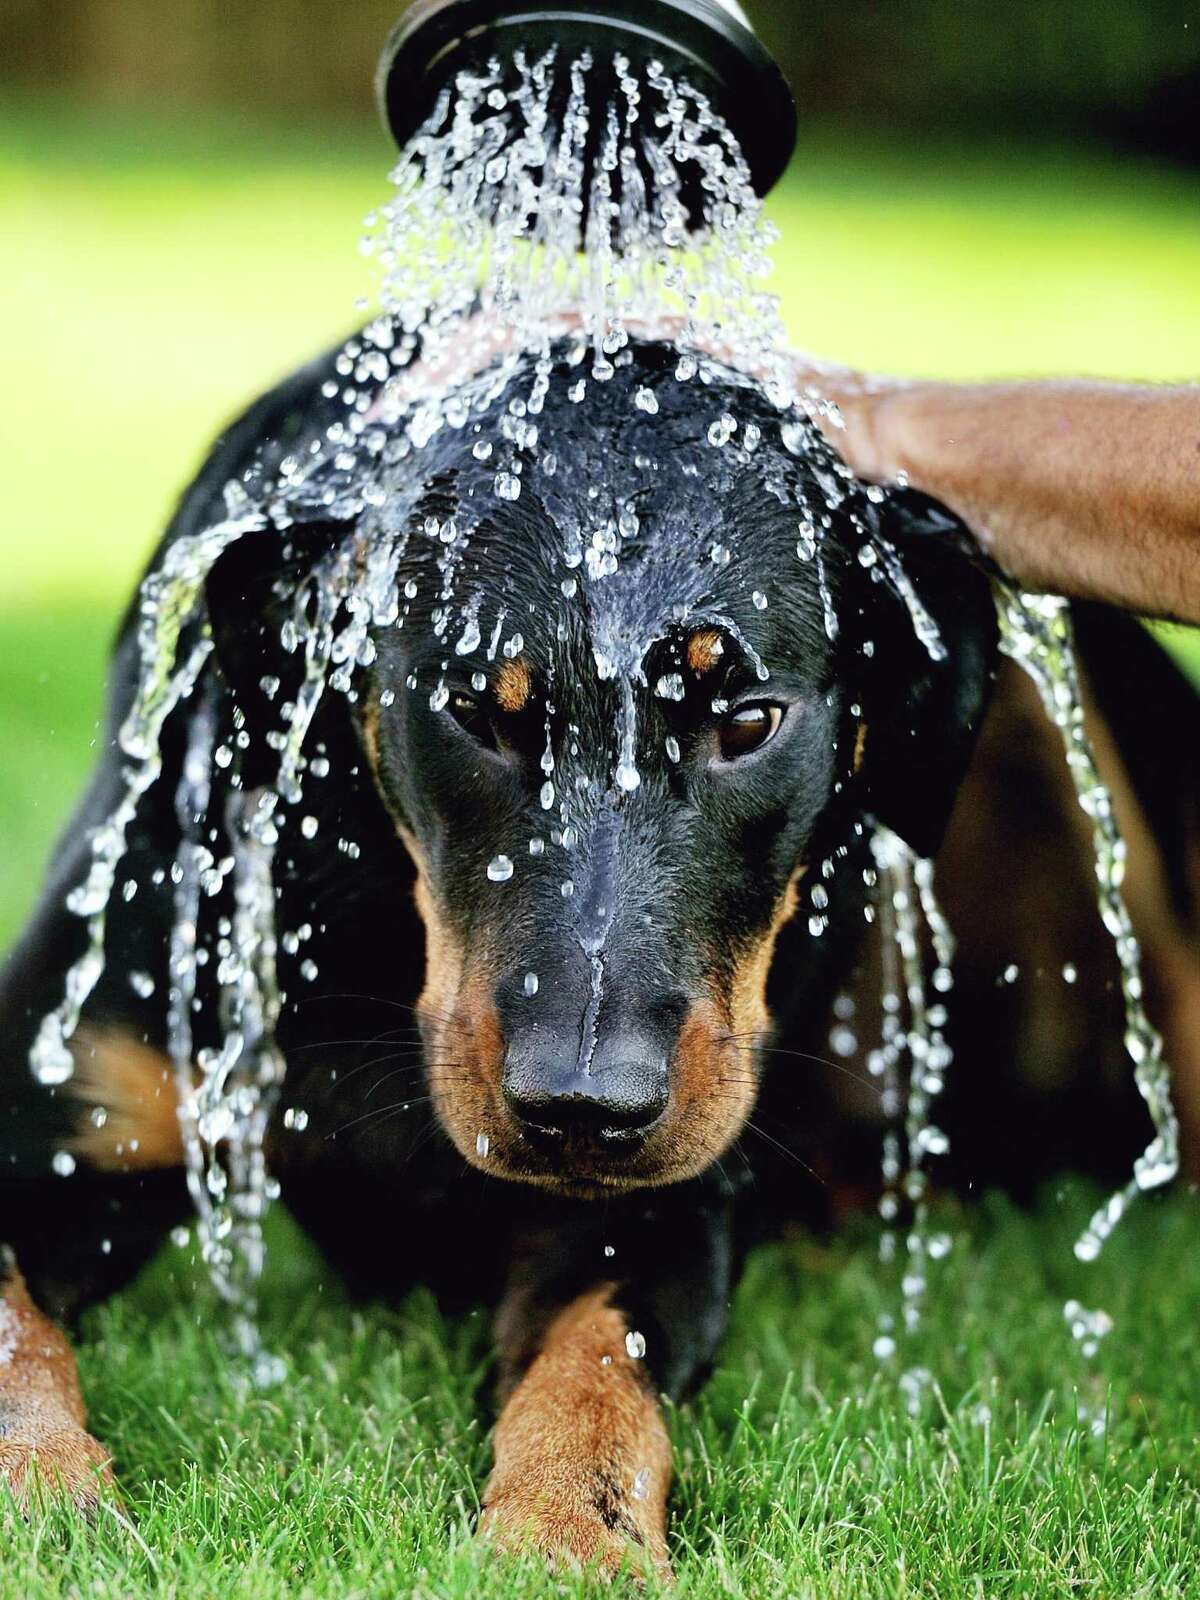 A pet is sprayed with water during a heat wave.